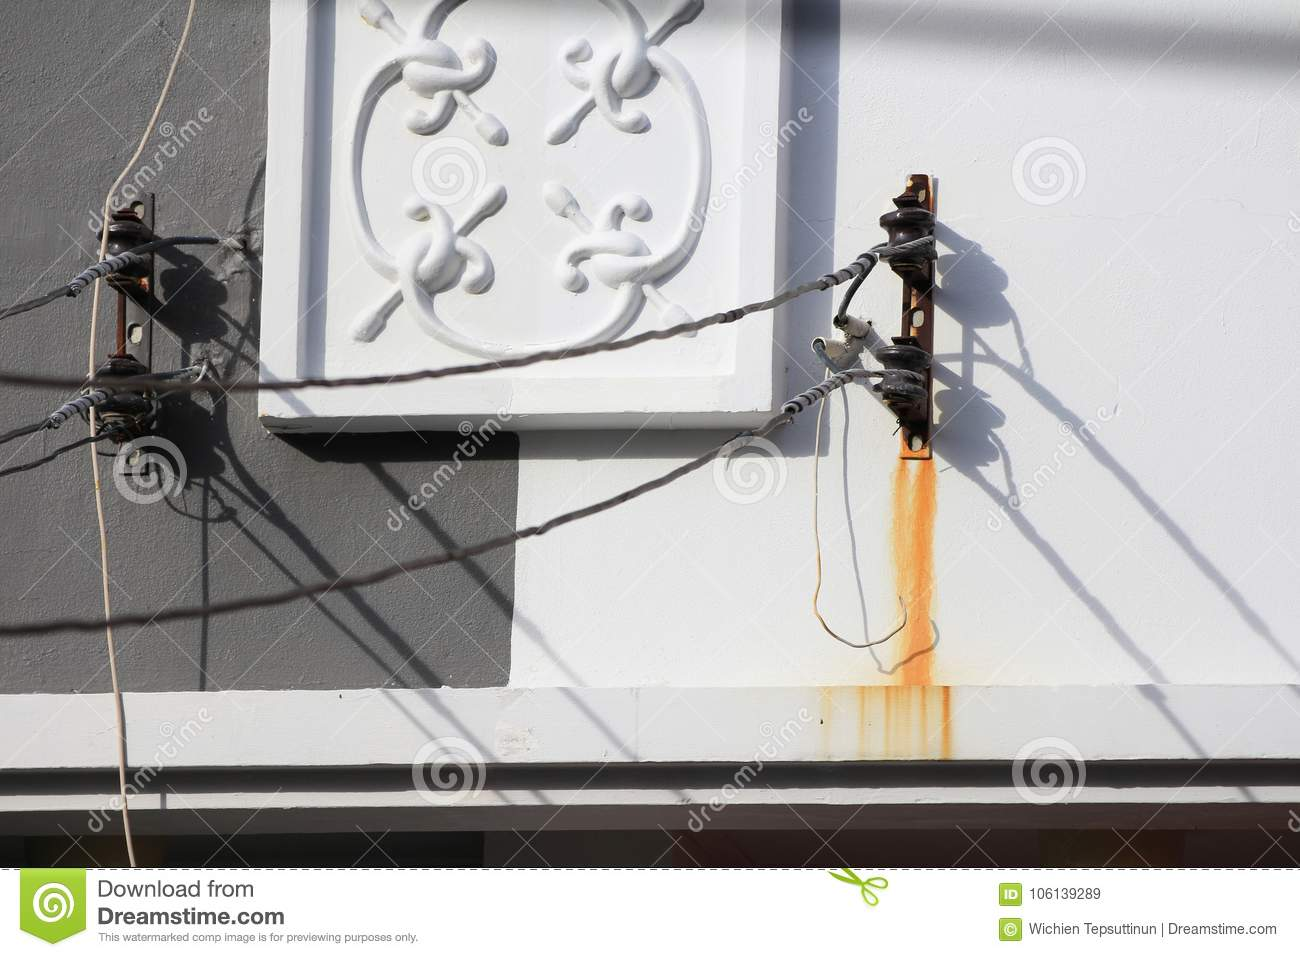 Wall Dirty By Rusty Steel Cable Support Stock Image - Image of ...